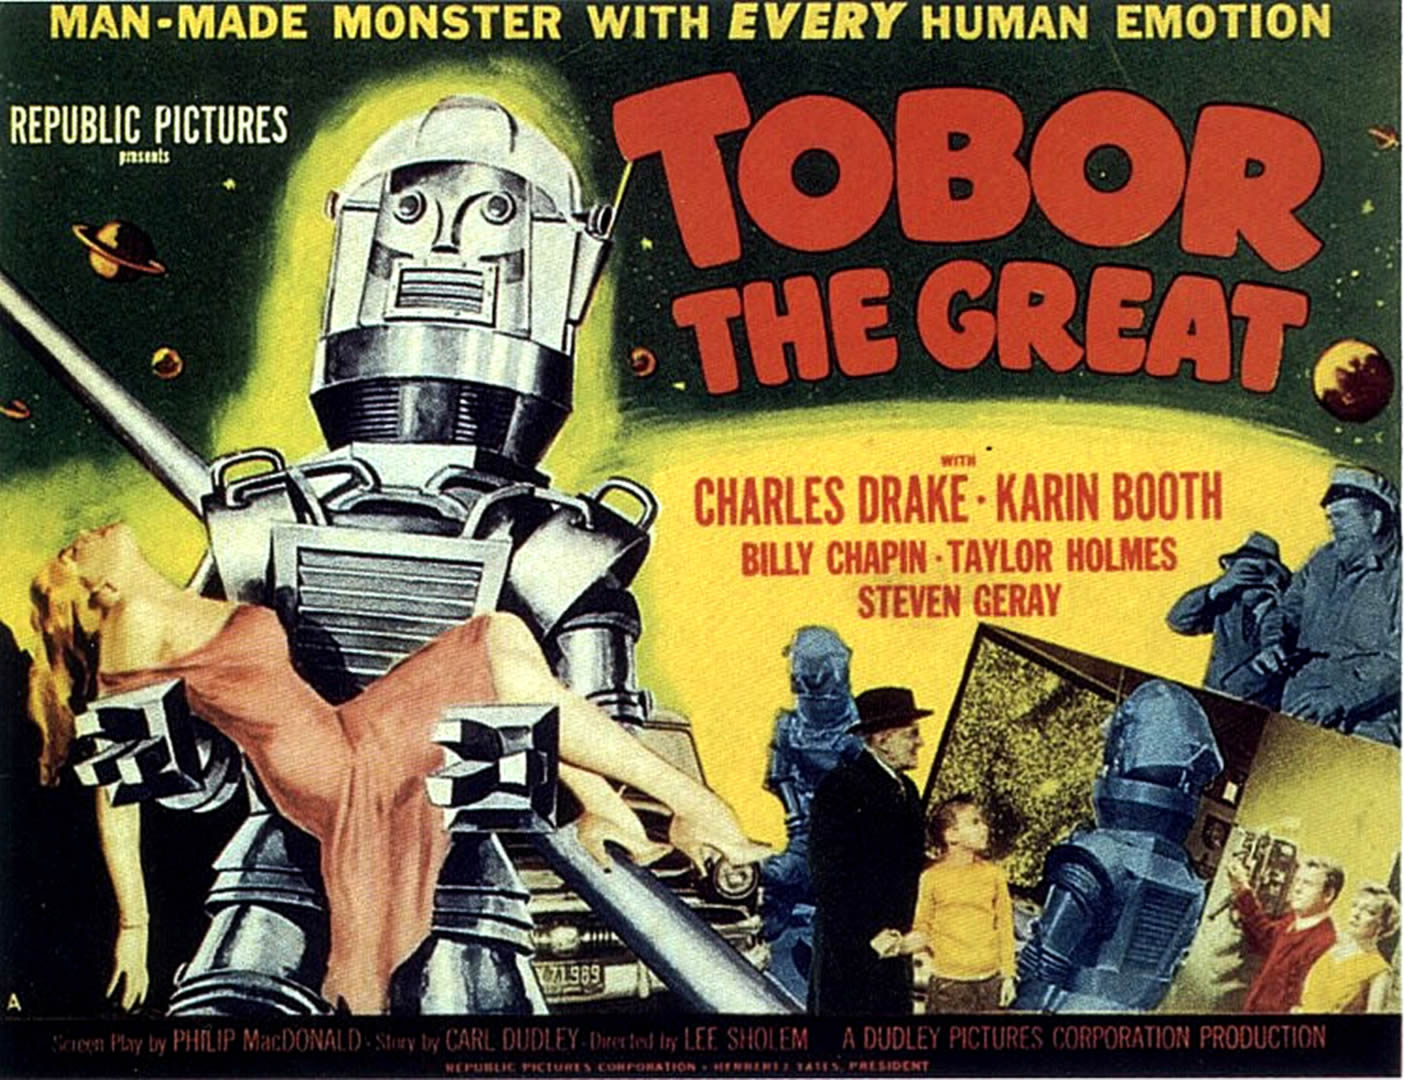 Tobor the Great, a man-made machine with EVERY emotion. Released in 1954.